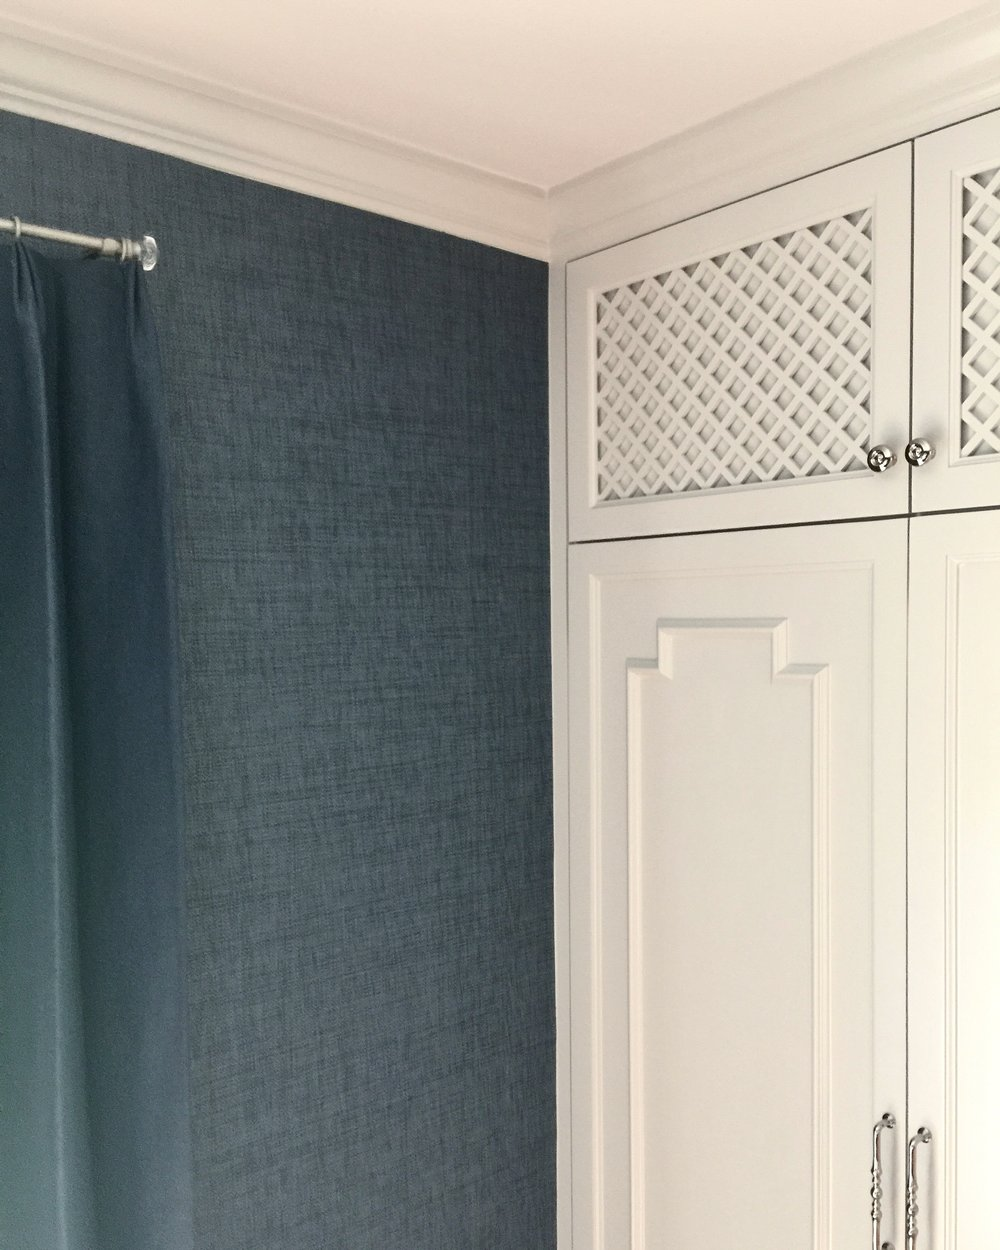 Navy grasscloth with chinoiserie style cabinet onlay design - Designer: Carla Aston